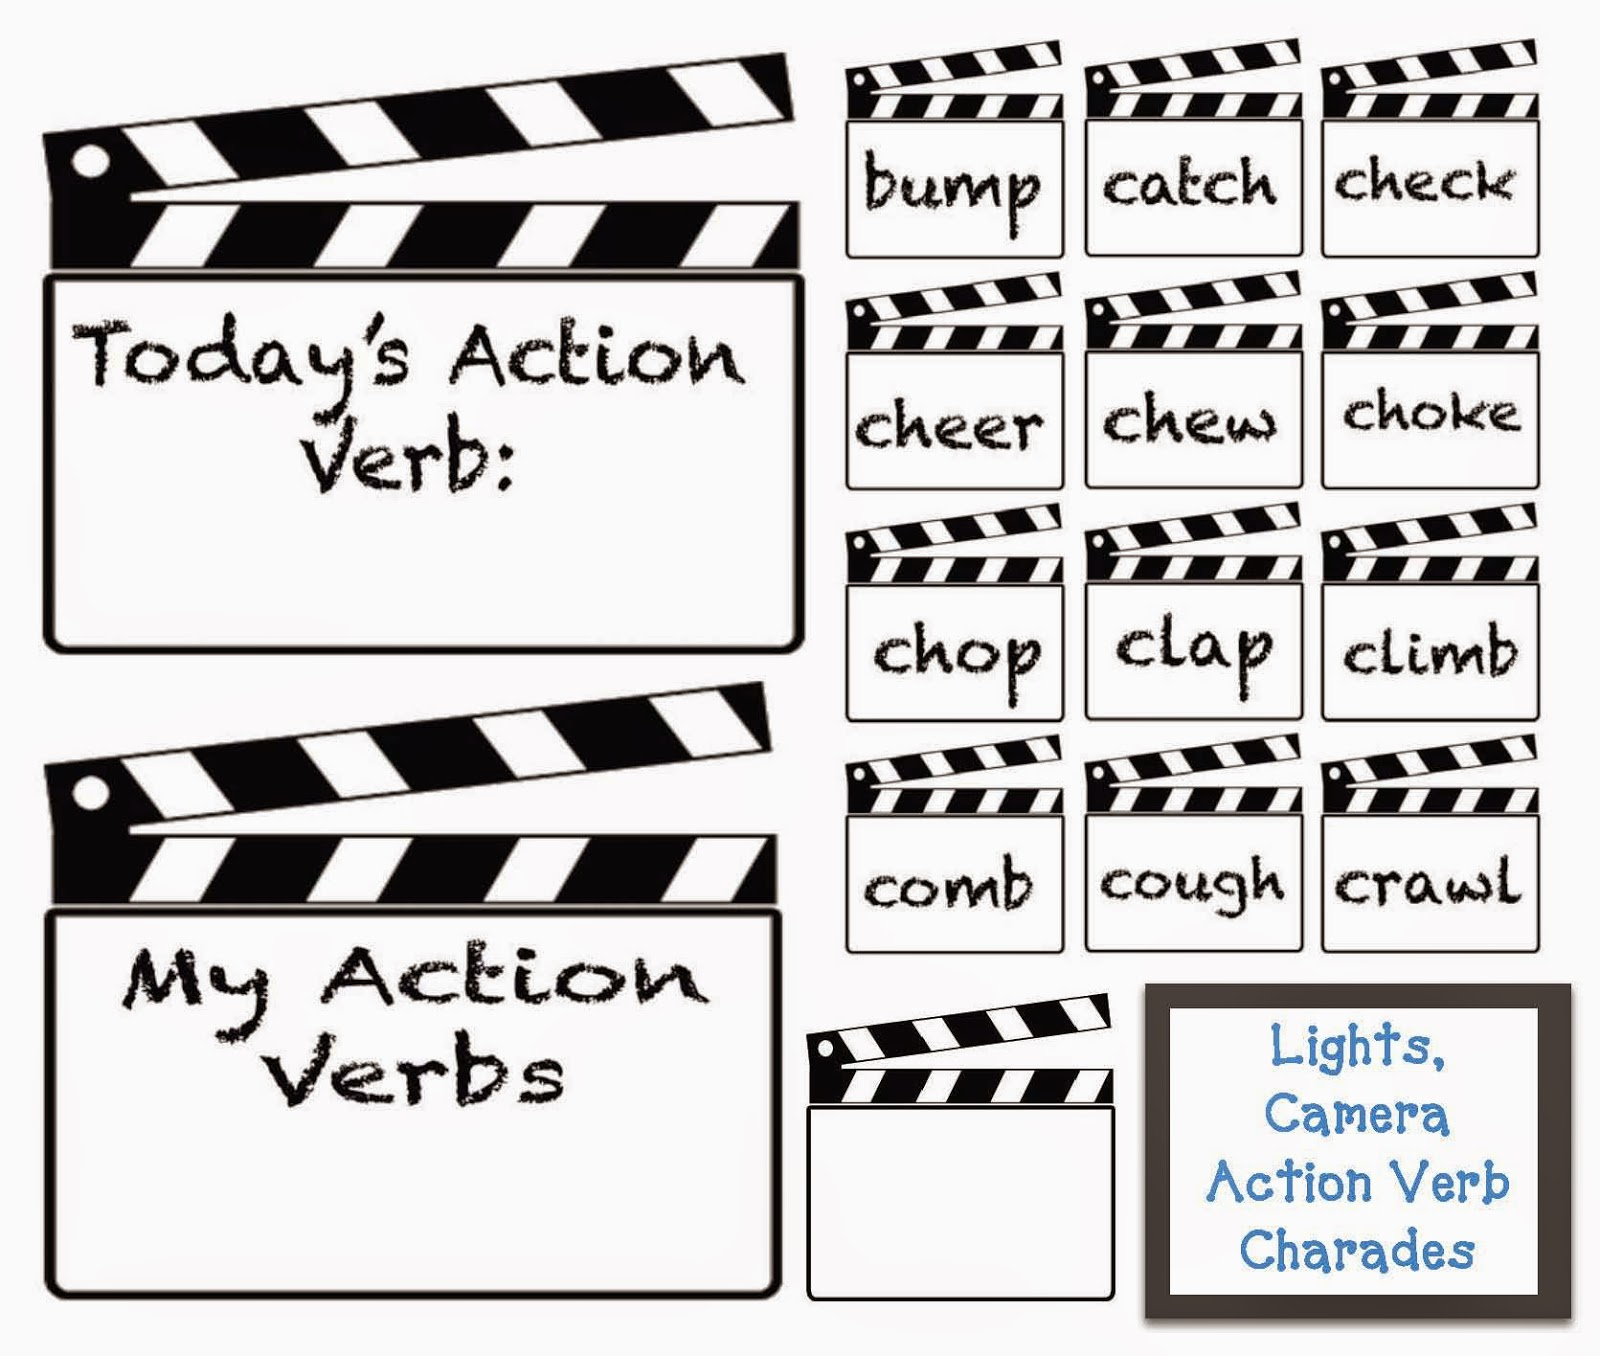 action verb doc tk action verb 24 04 2017